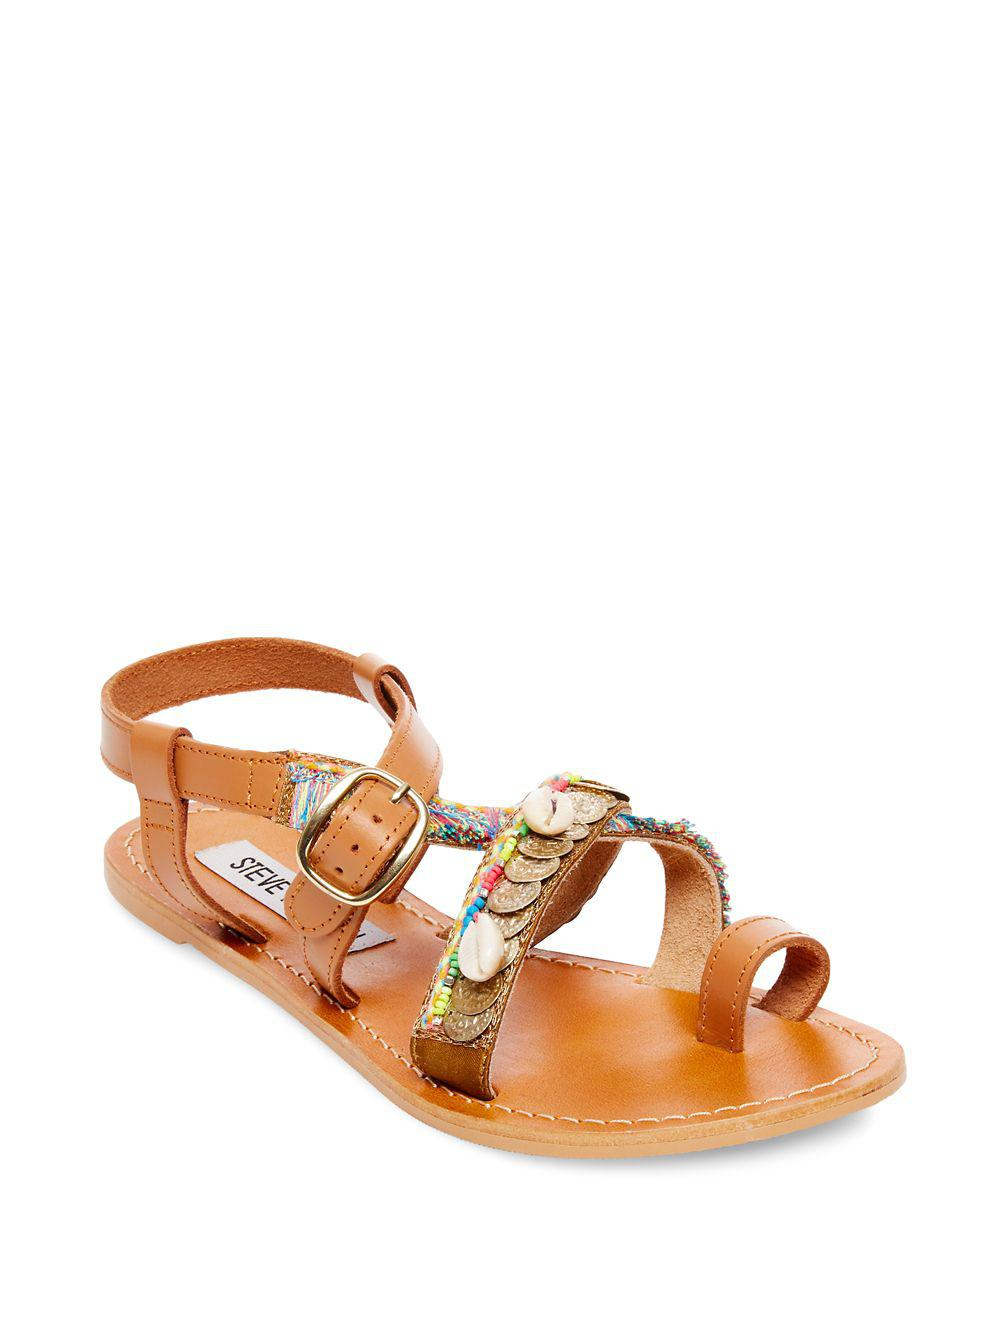 094660339a1 Steve Madden Rowen Embellished Leather Sandals in Brown - Lyst